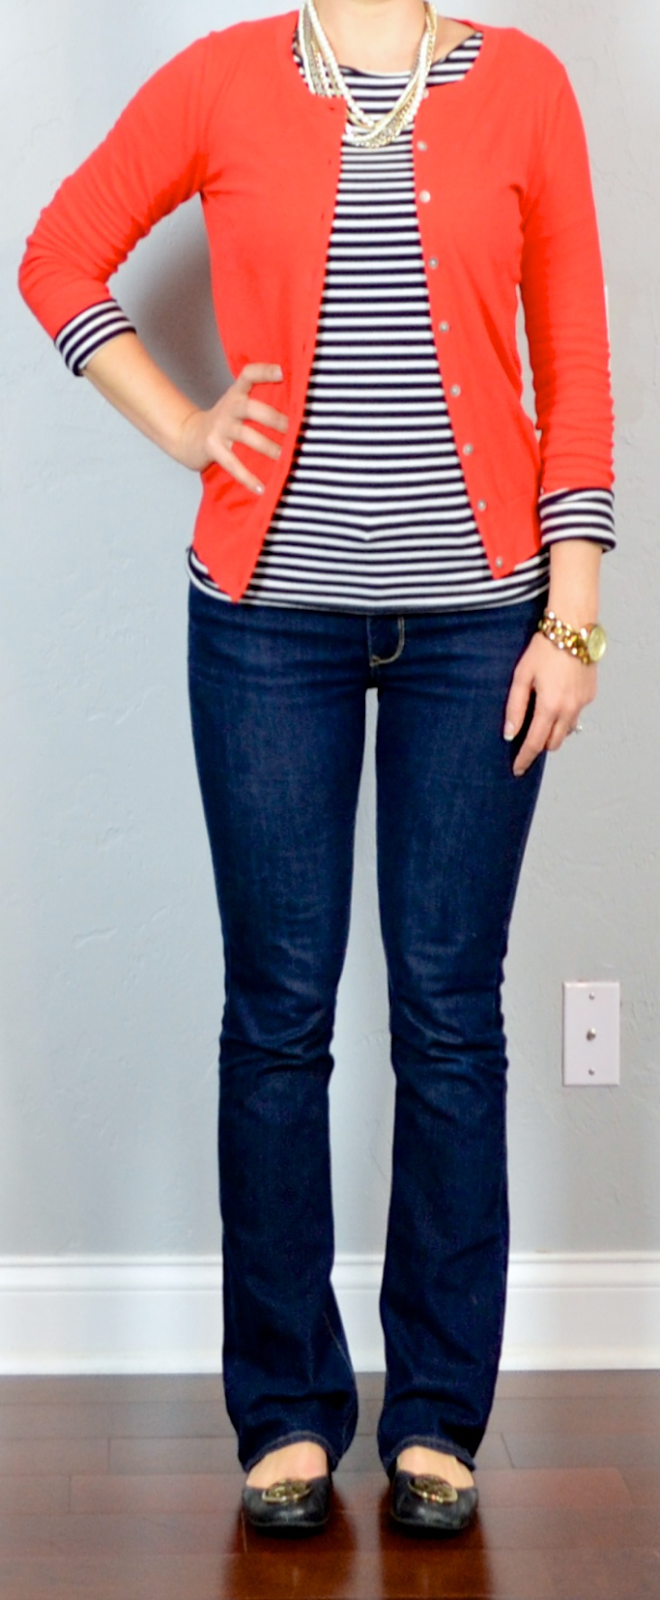 Outfit post red cardigan striped shirt bootcut jeans black flats | Outfit Posts